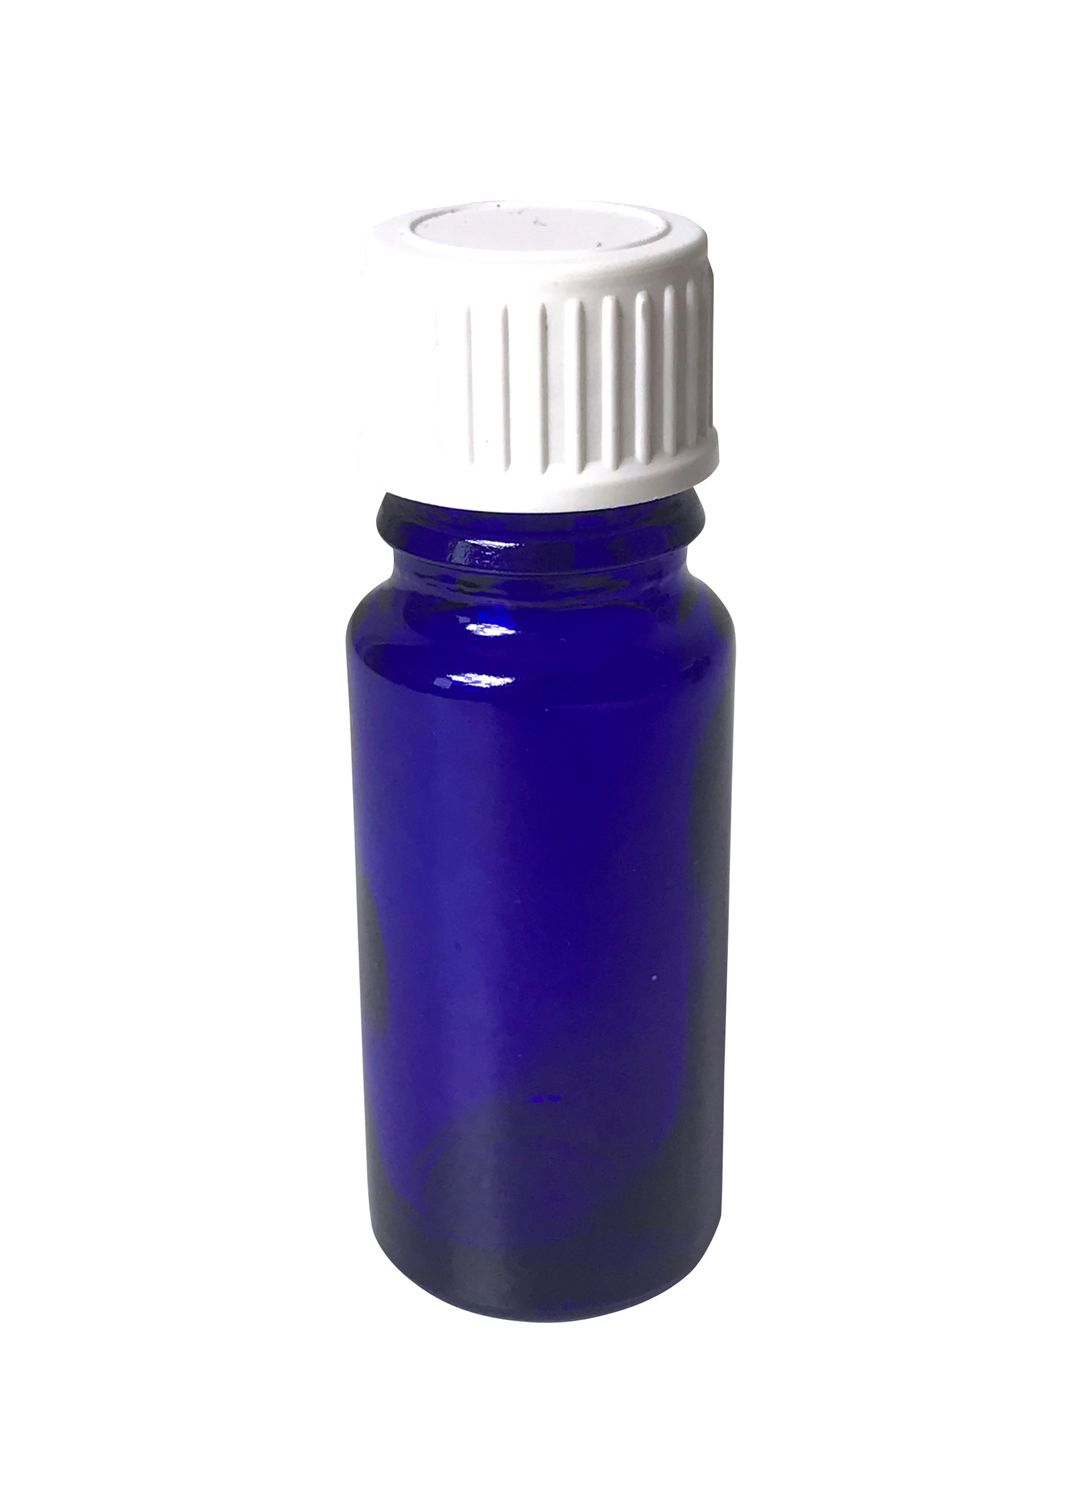 Cobalt Blue Bottle 10 ml DIN 18 Thread & Lid